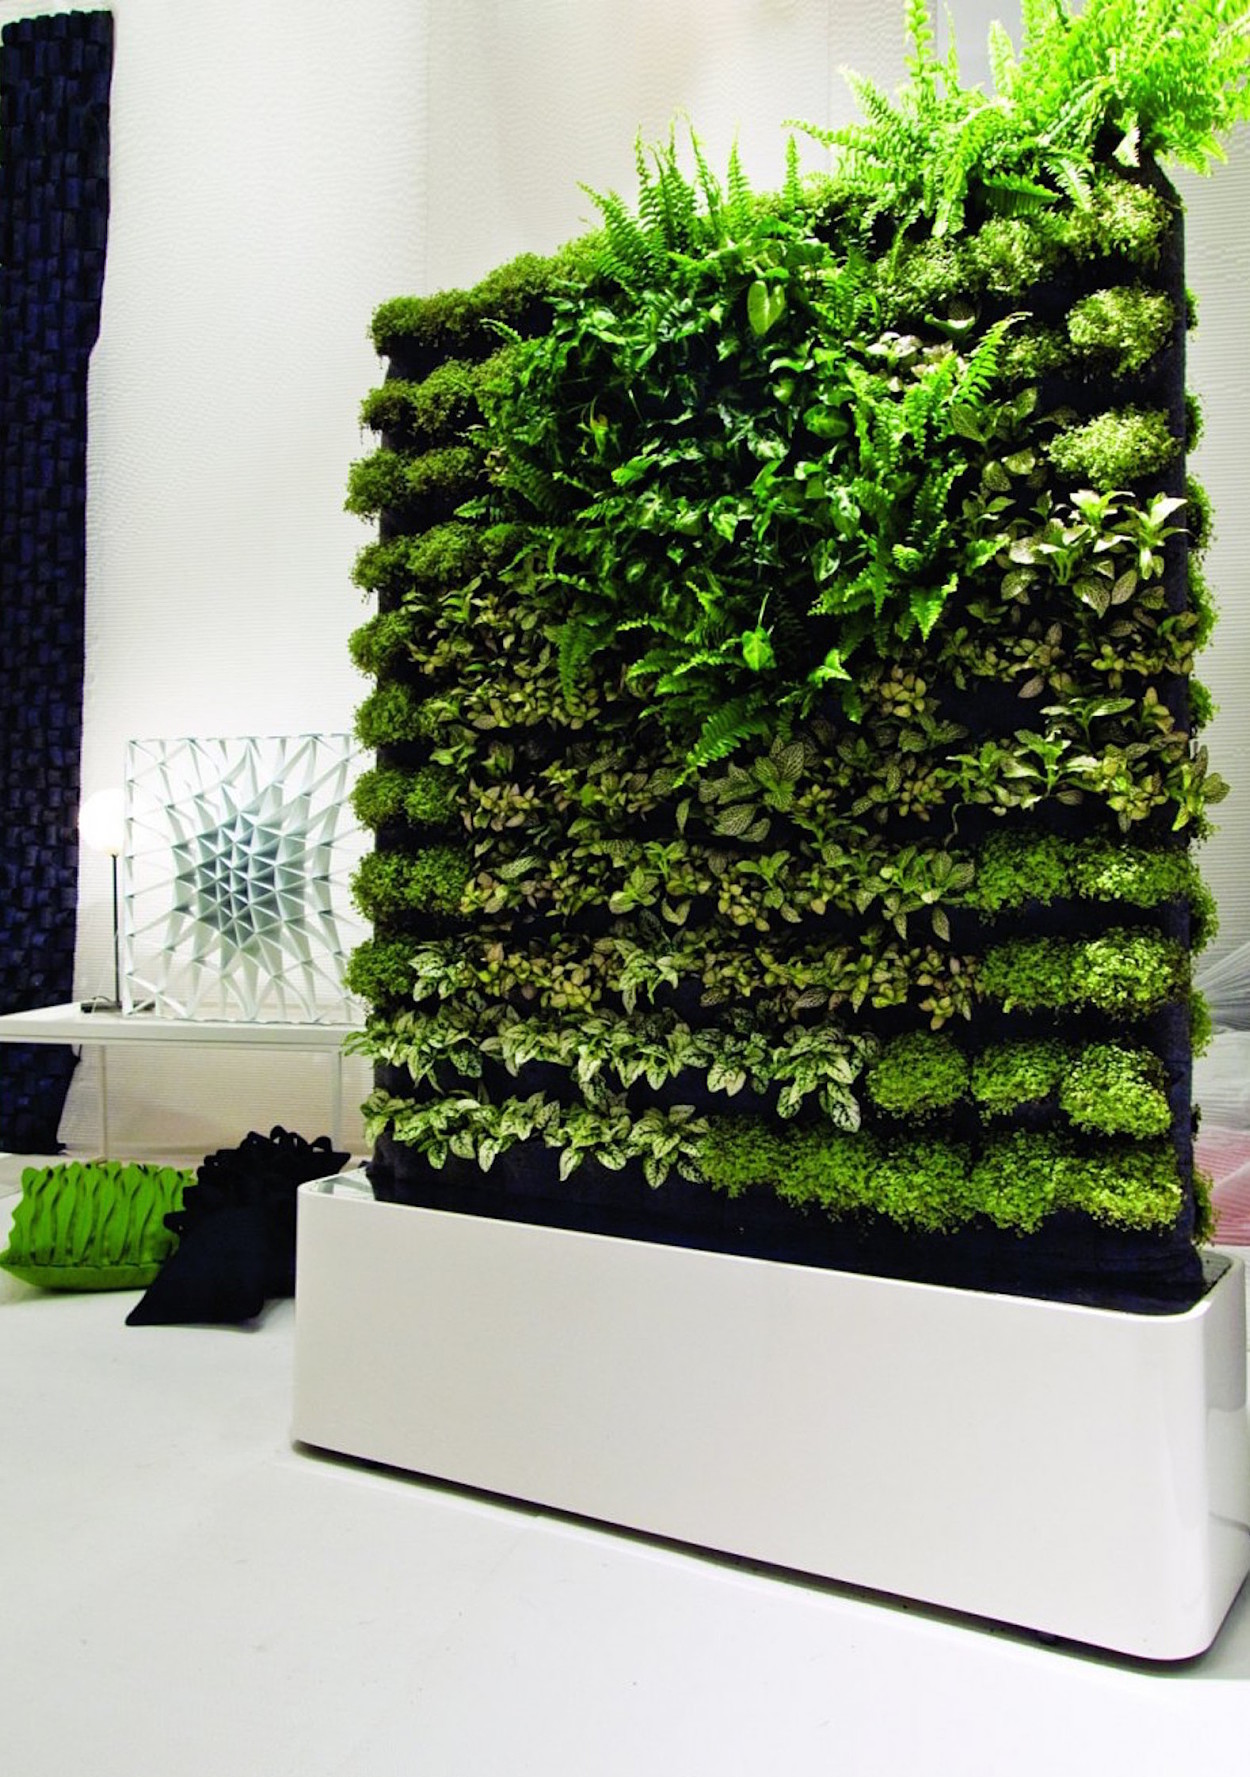 Moss Wall Art Isnt Just Pretty Its Good For You Too